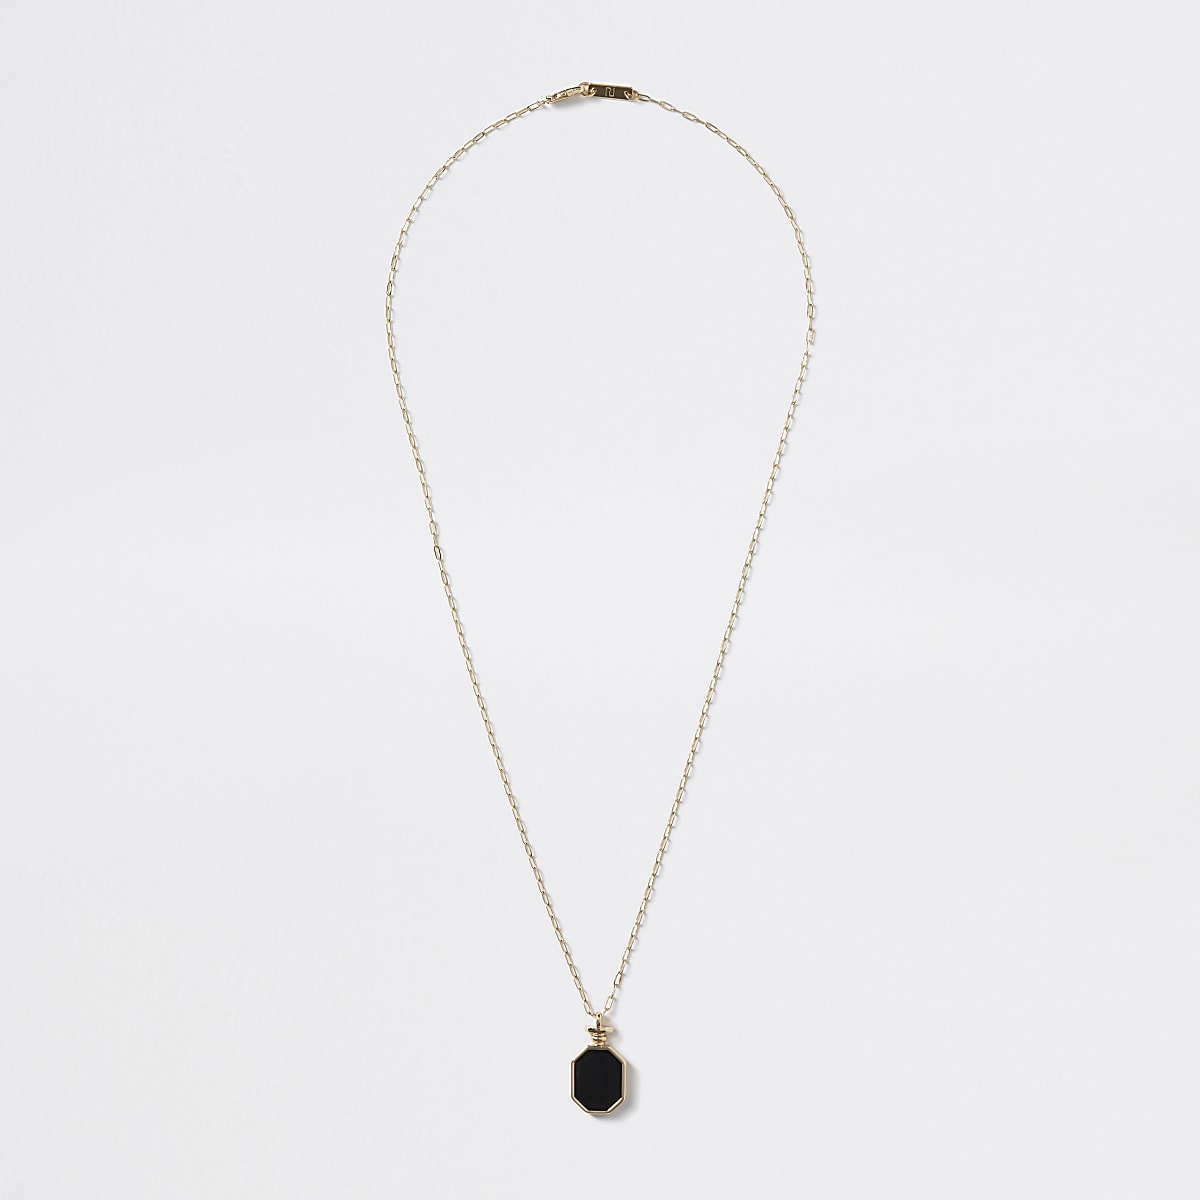 Gold colour black enamel pendant necklace